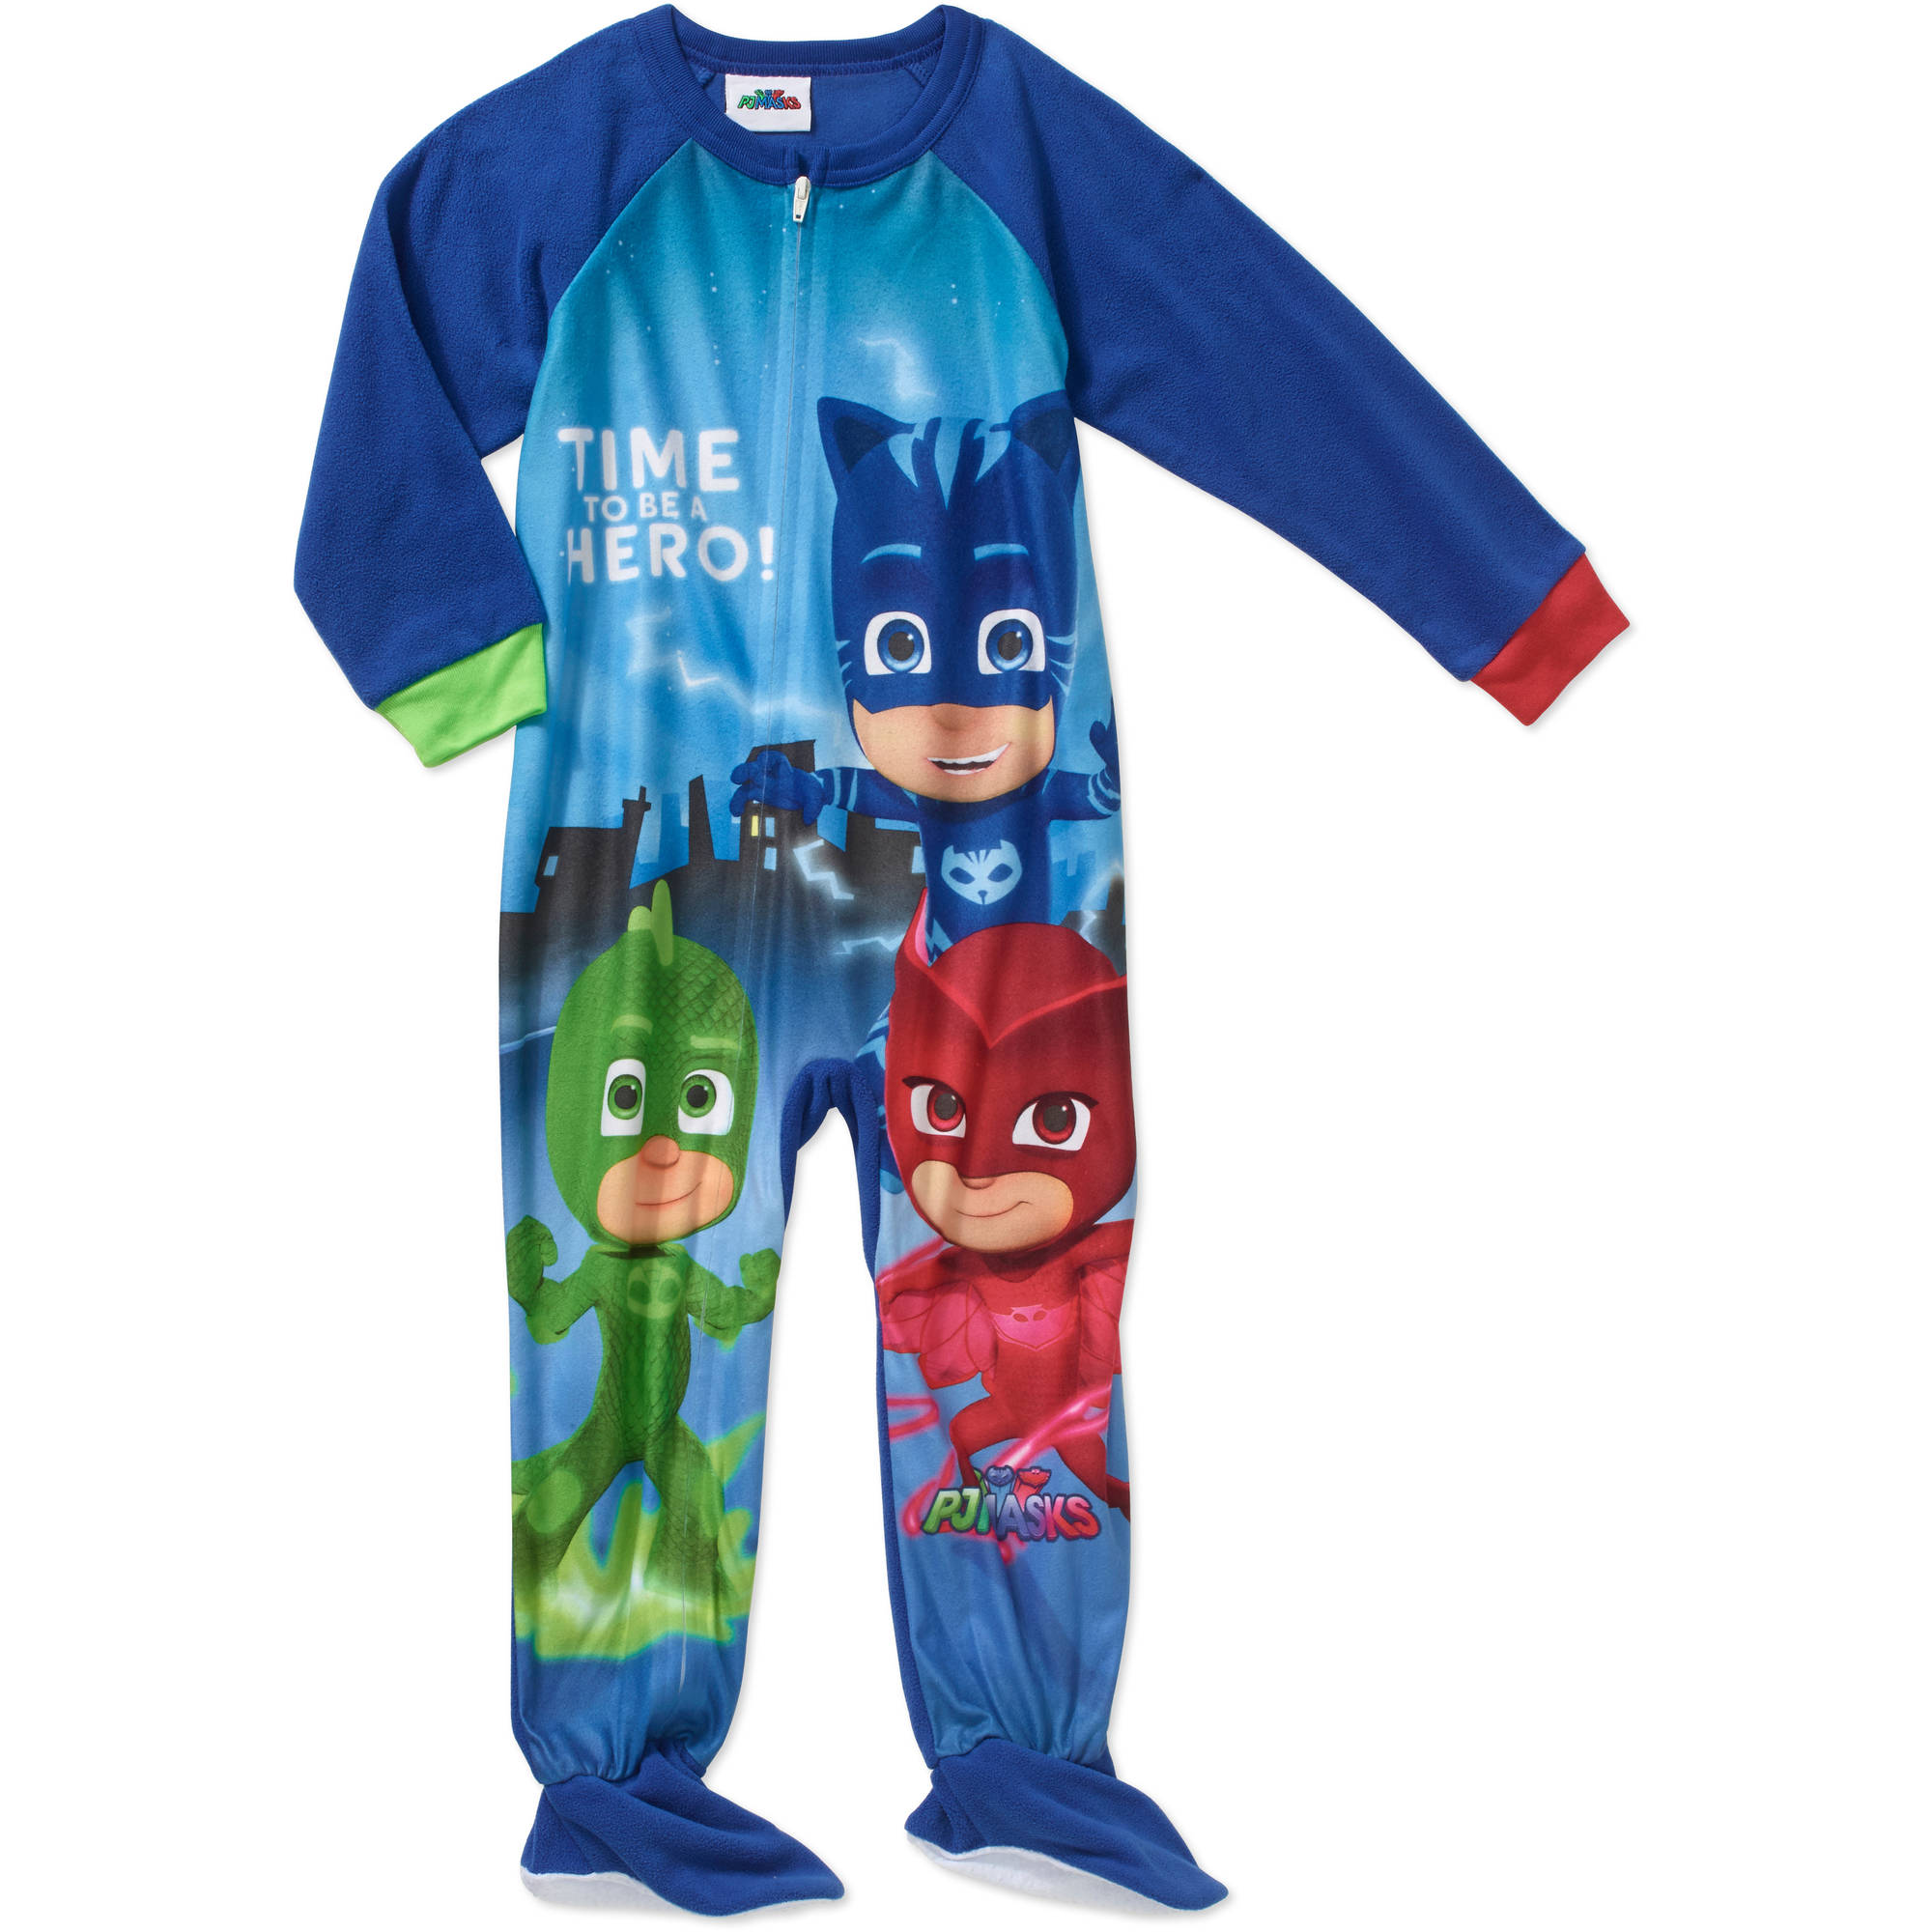 PJ Masks Toddler Boy Micro Fleece Footed PJ